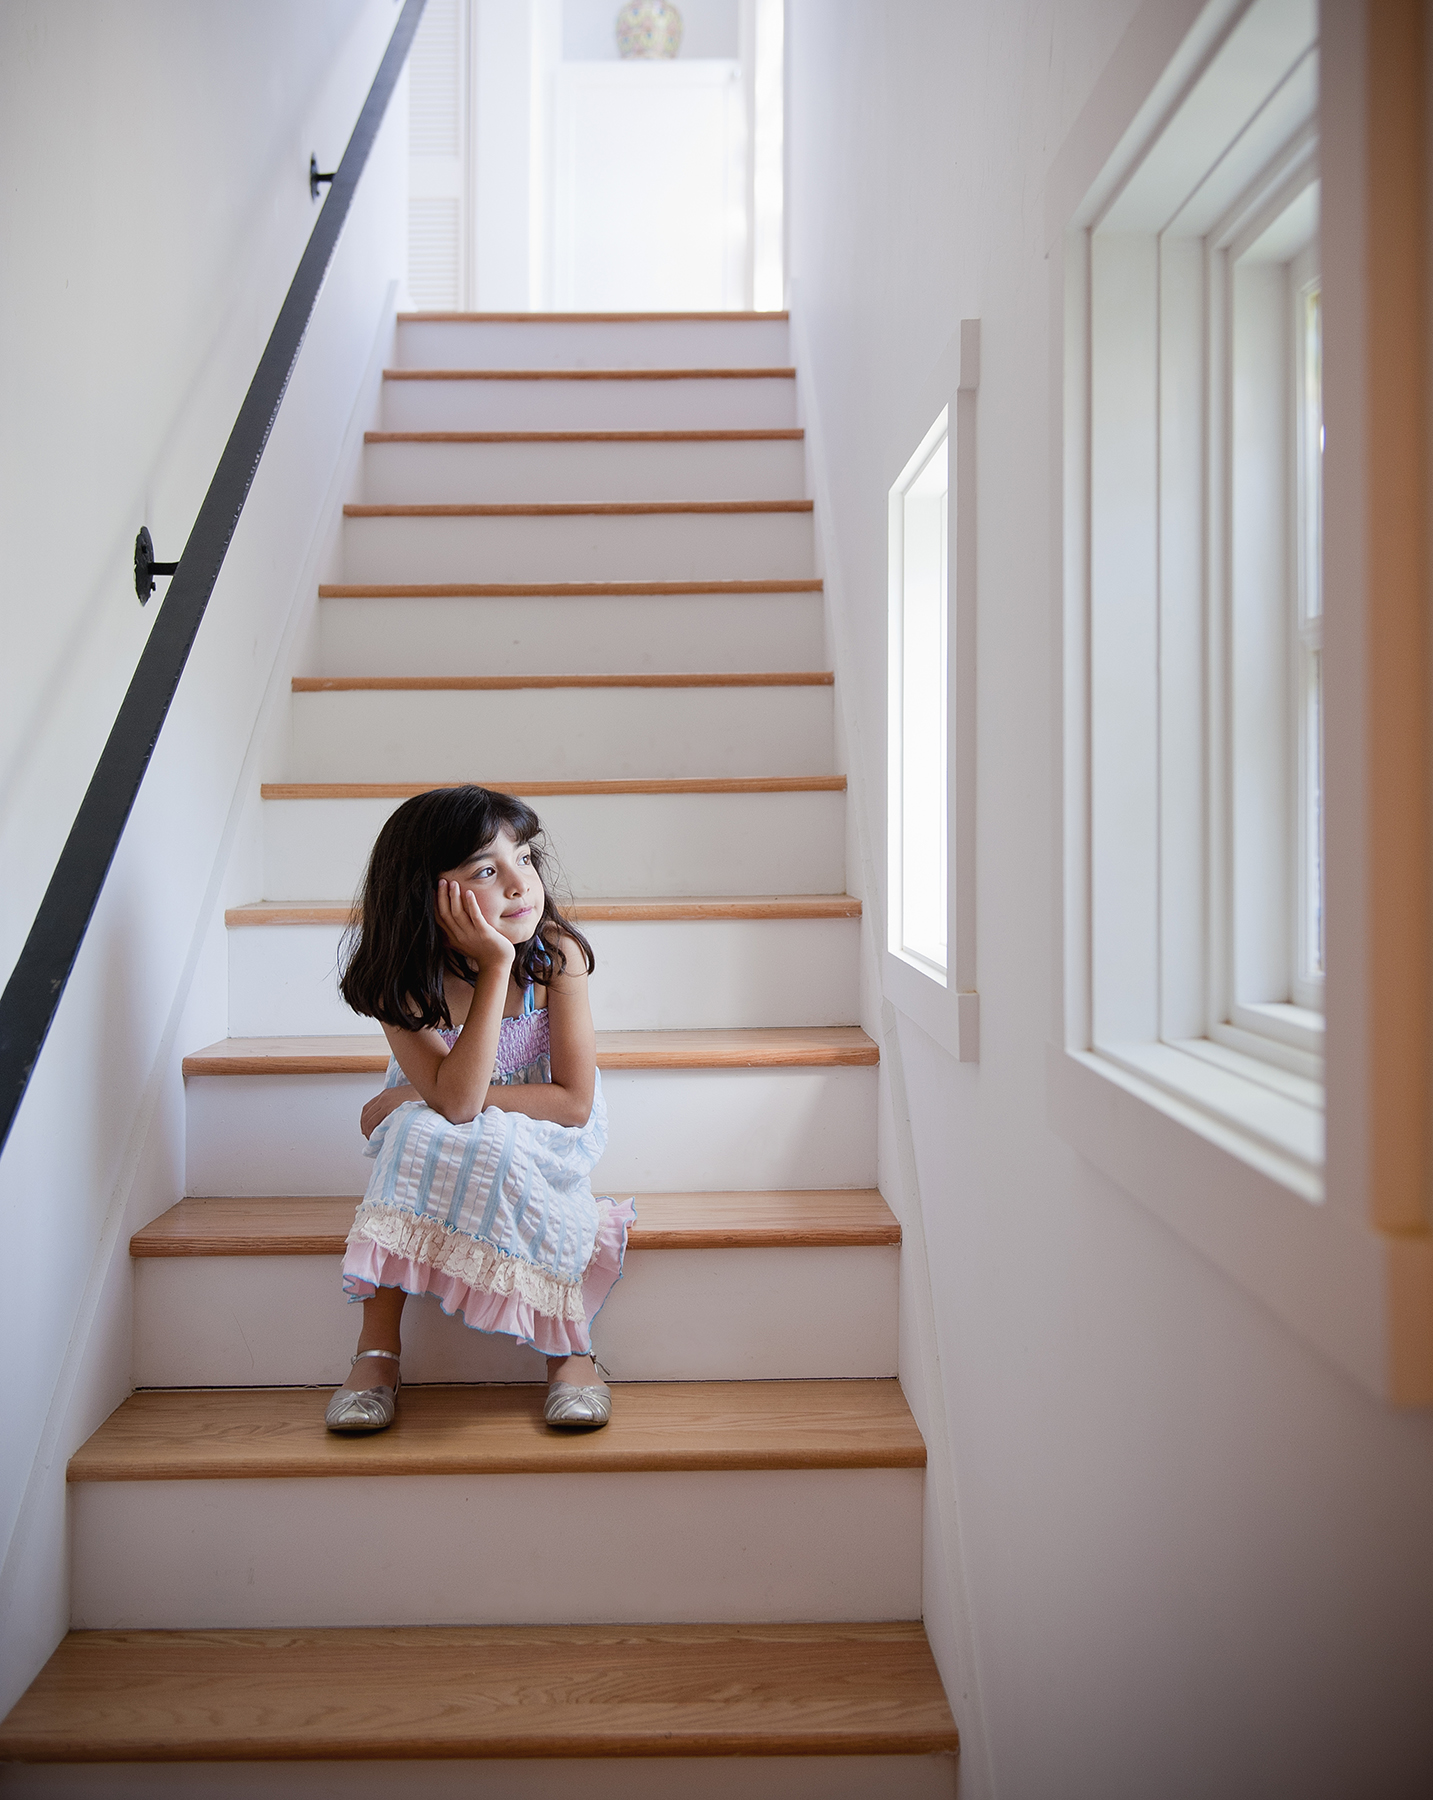 girl-stairs